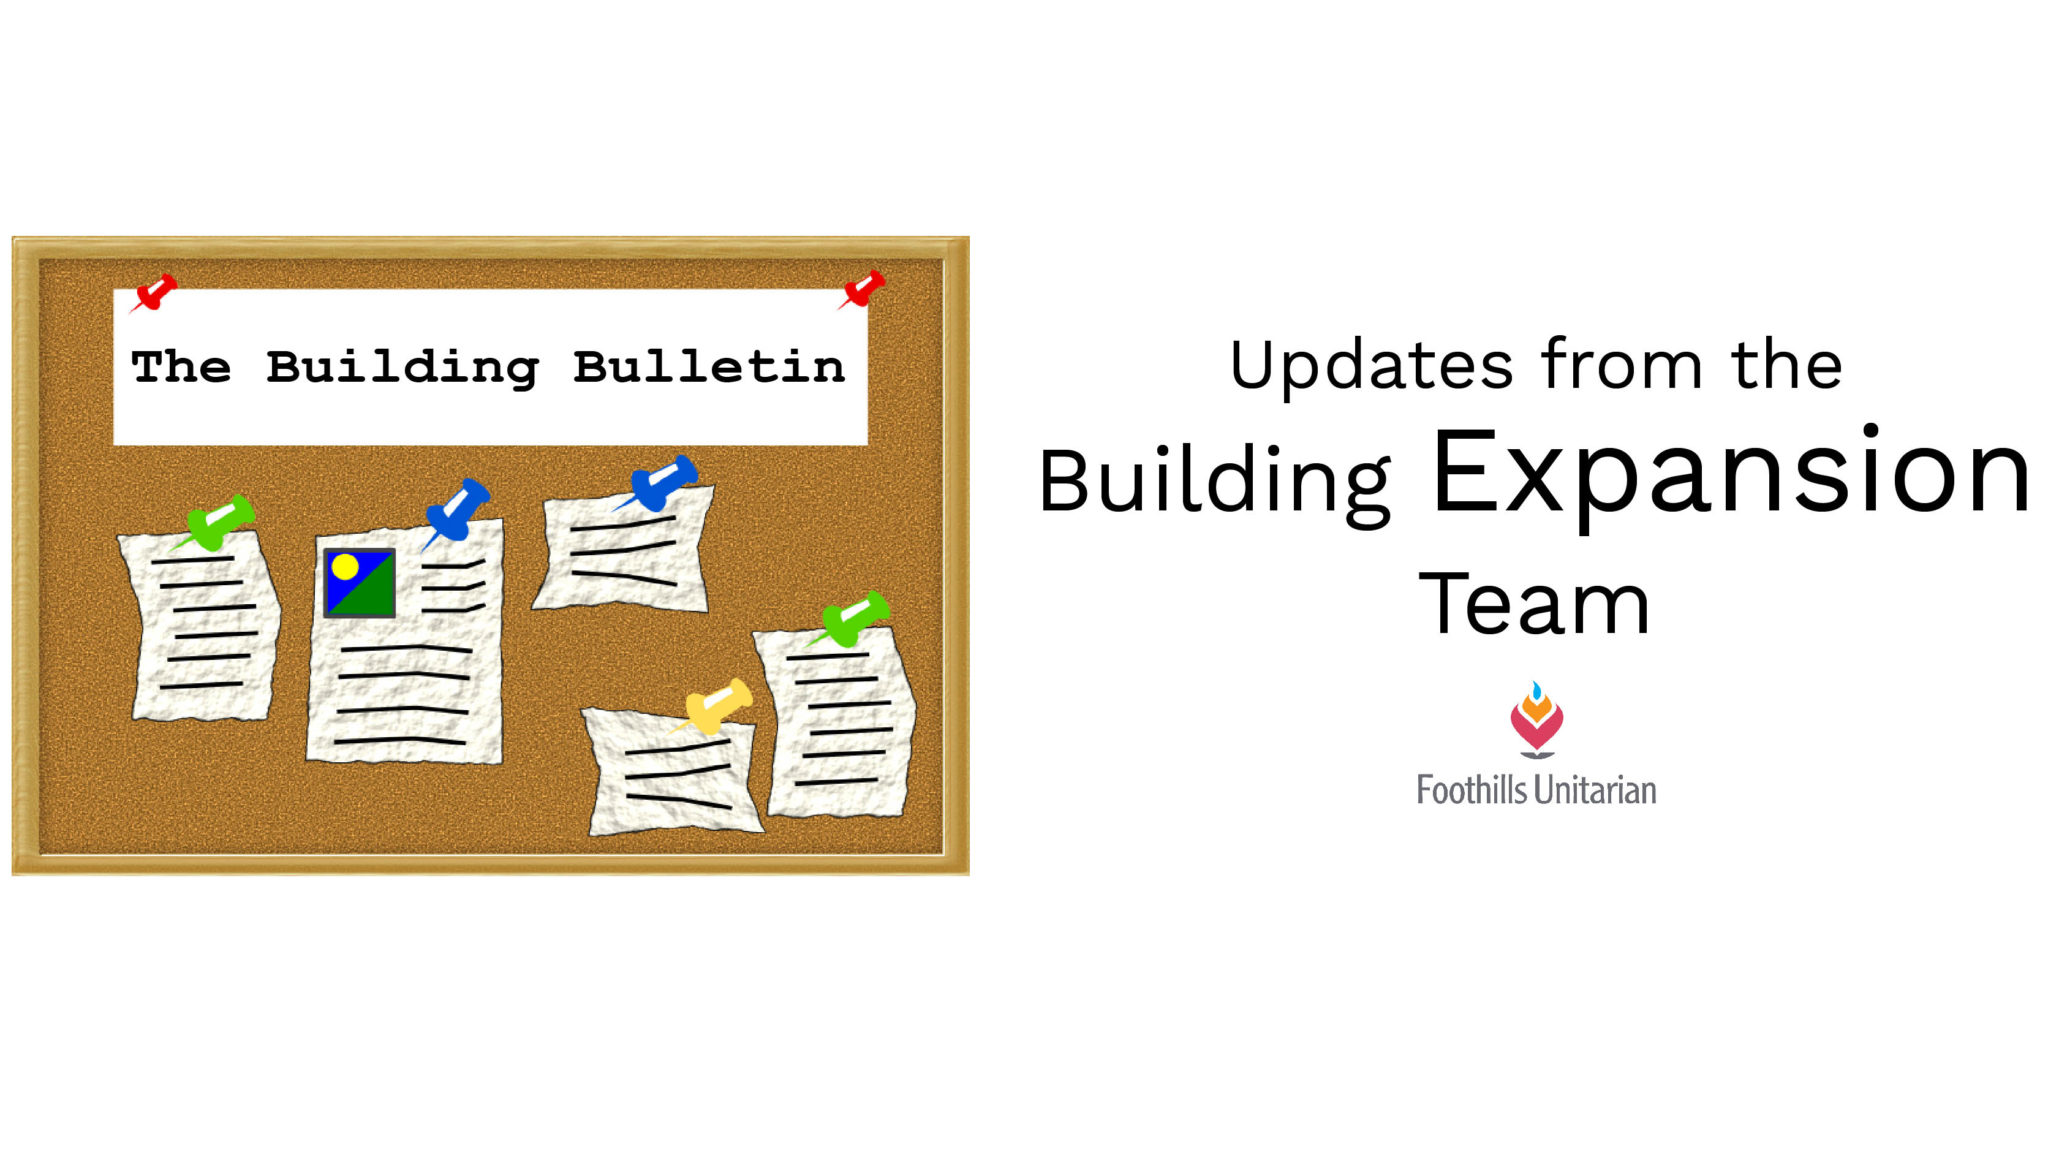 The Building Bulletin for May 2019